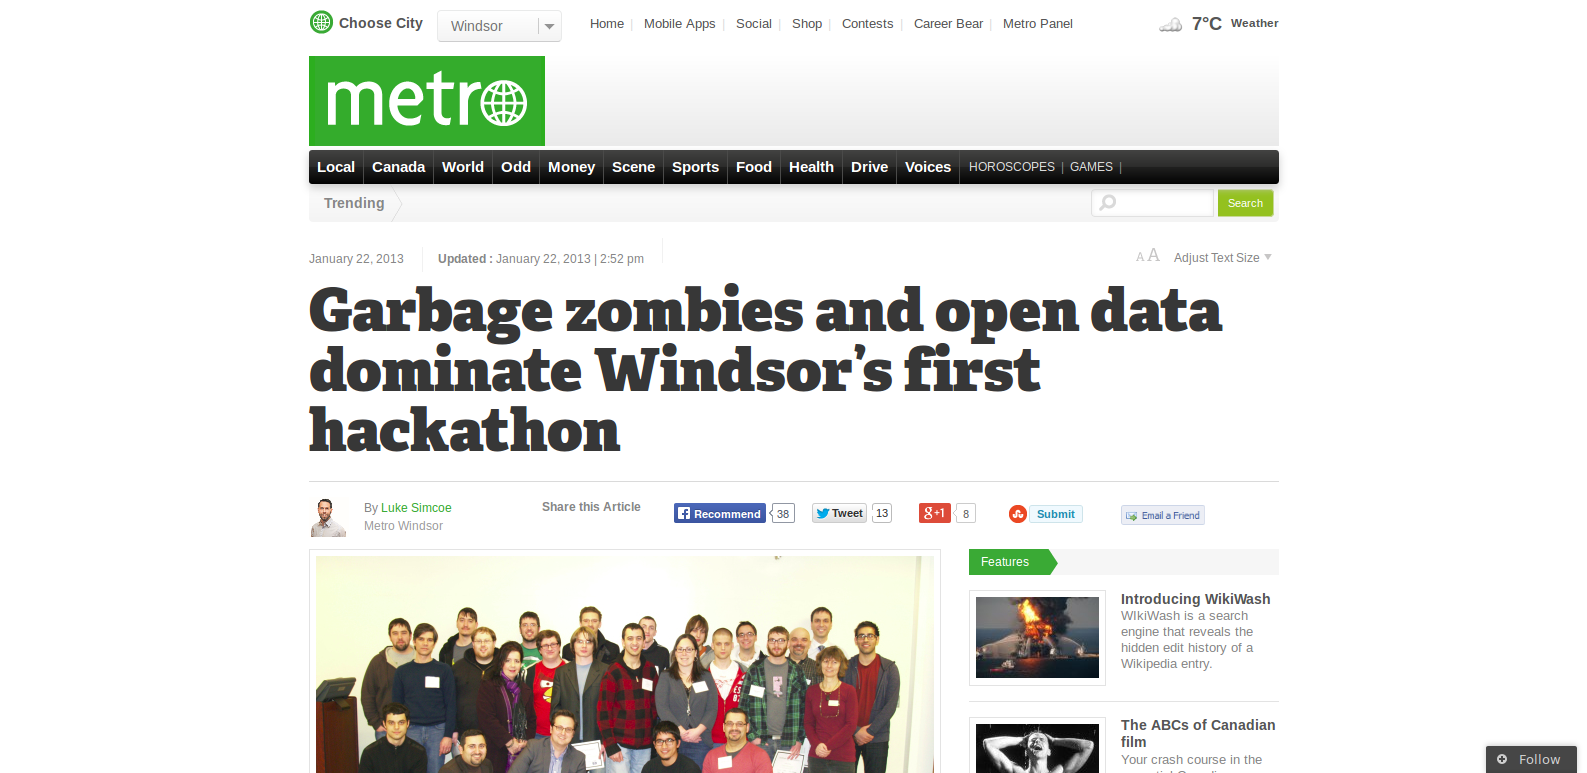 http://metronews.ca/news/windsor/519051/garbage-zombies-and-open-data-dominate-windsors-first-hackathon/